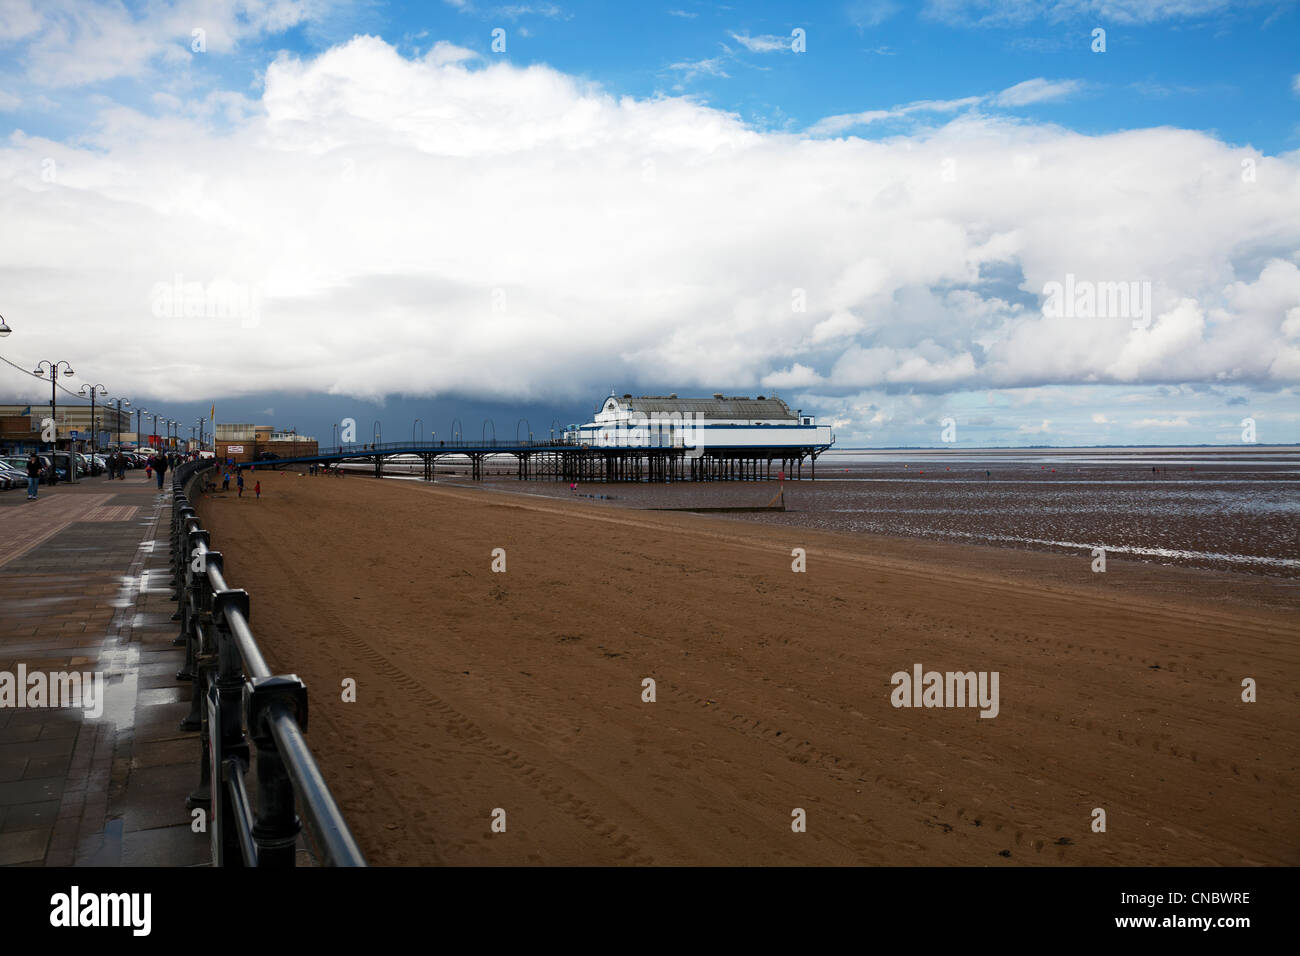 Cleethorpes, Lincolnshire, Pier a traditional victorian pier which is now a nightclub & restaurant people on - Stock Image